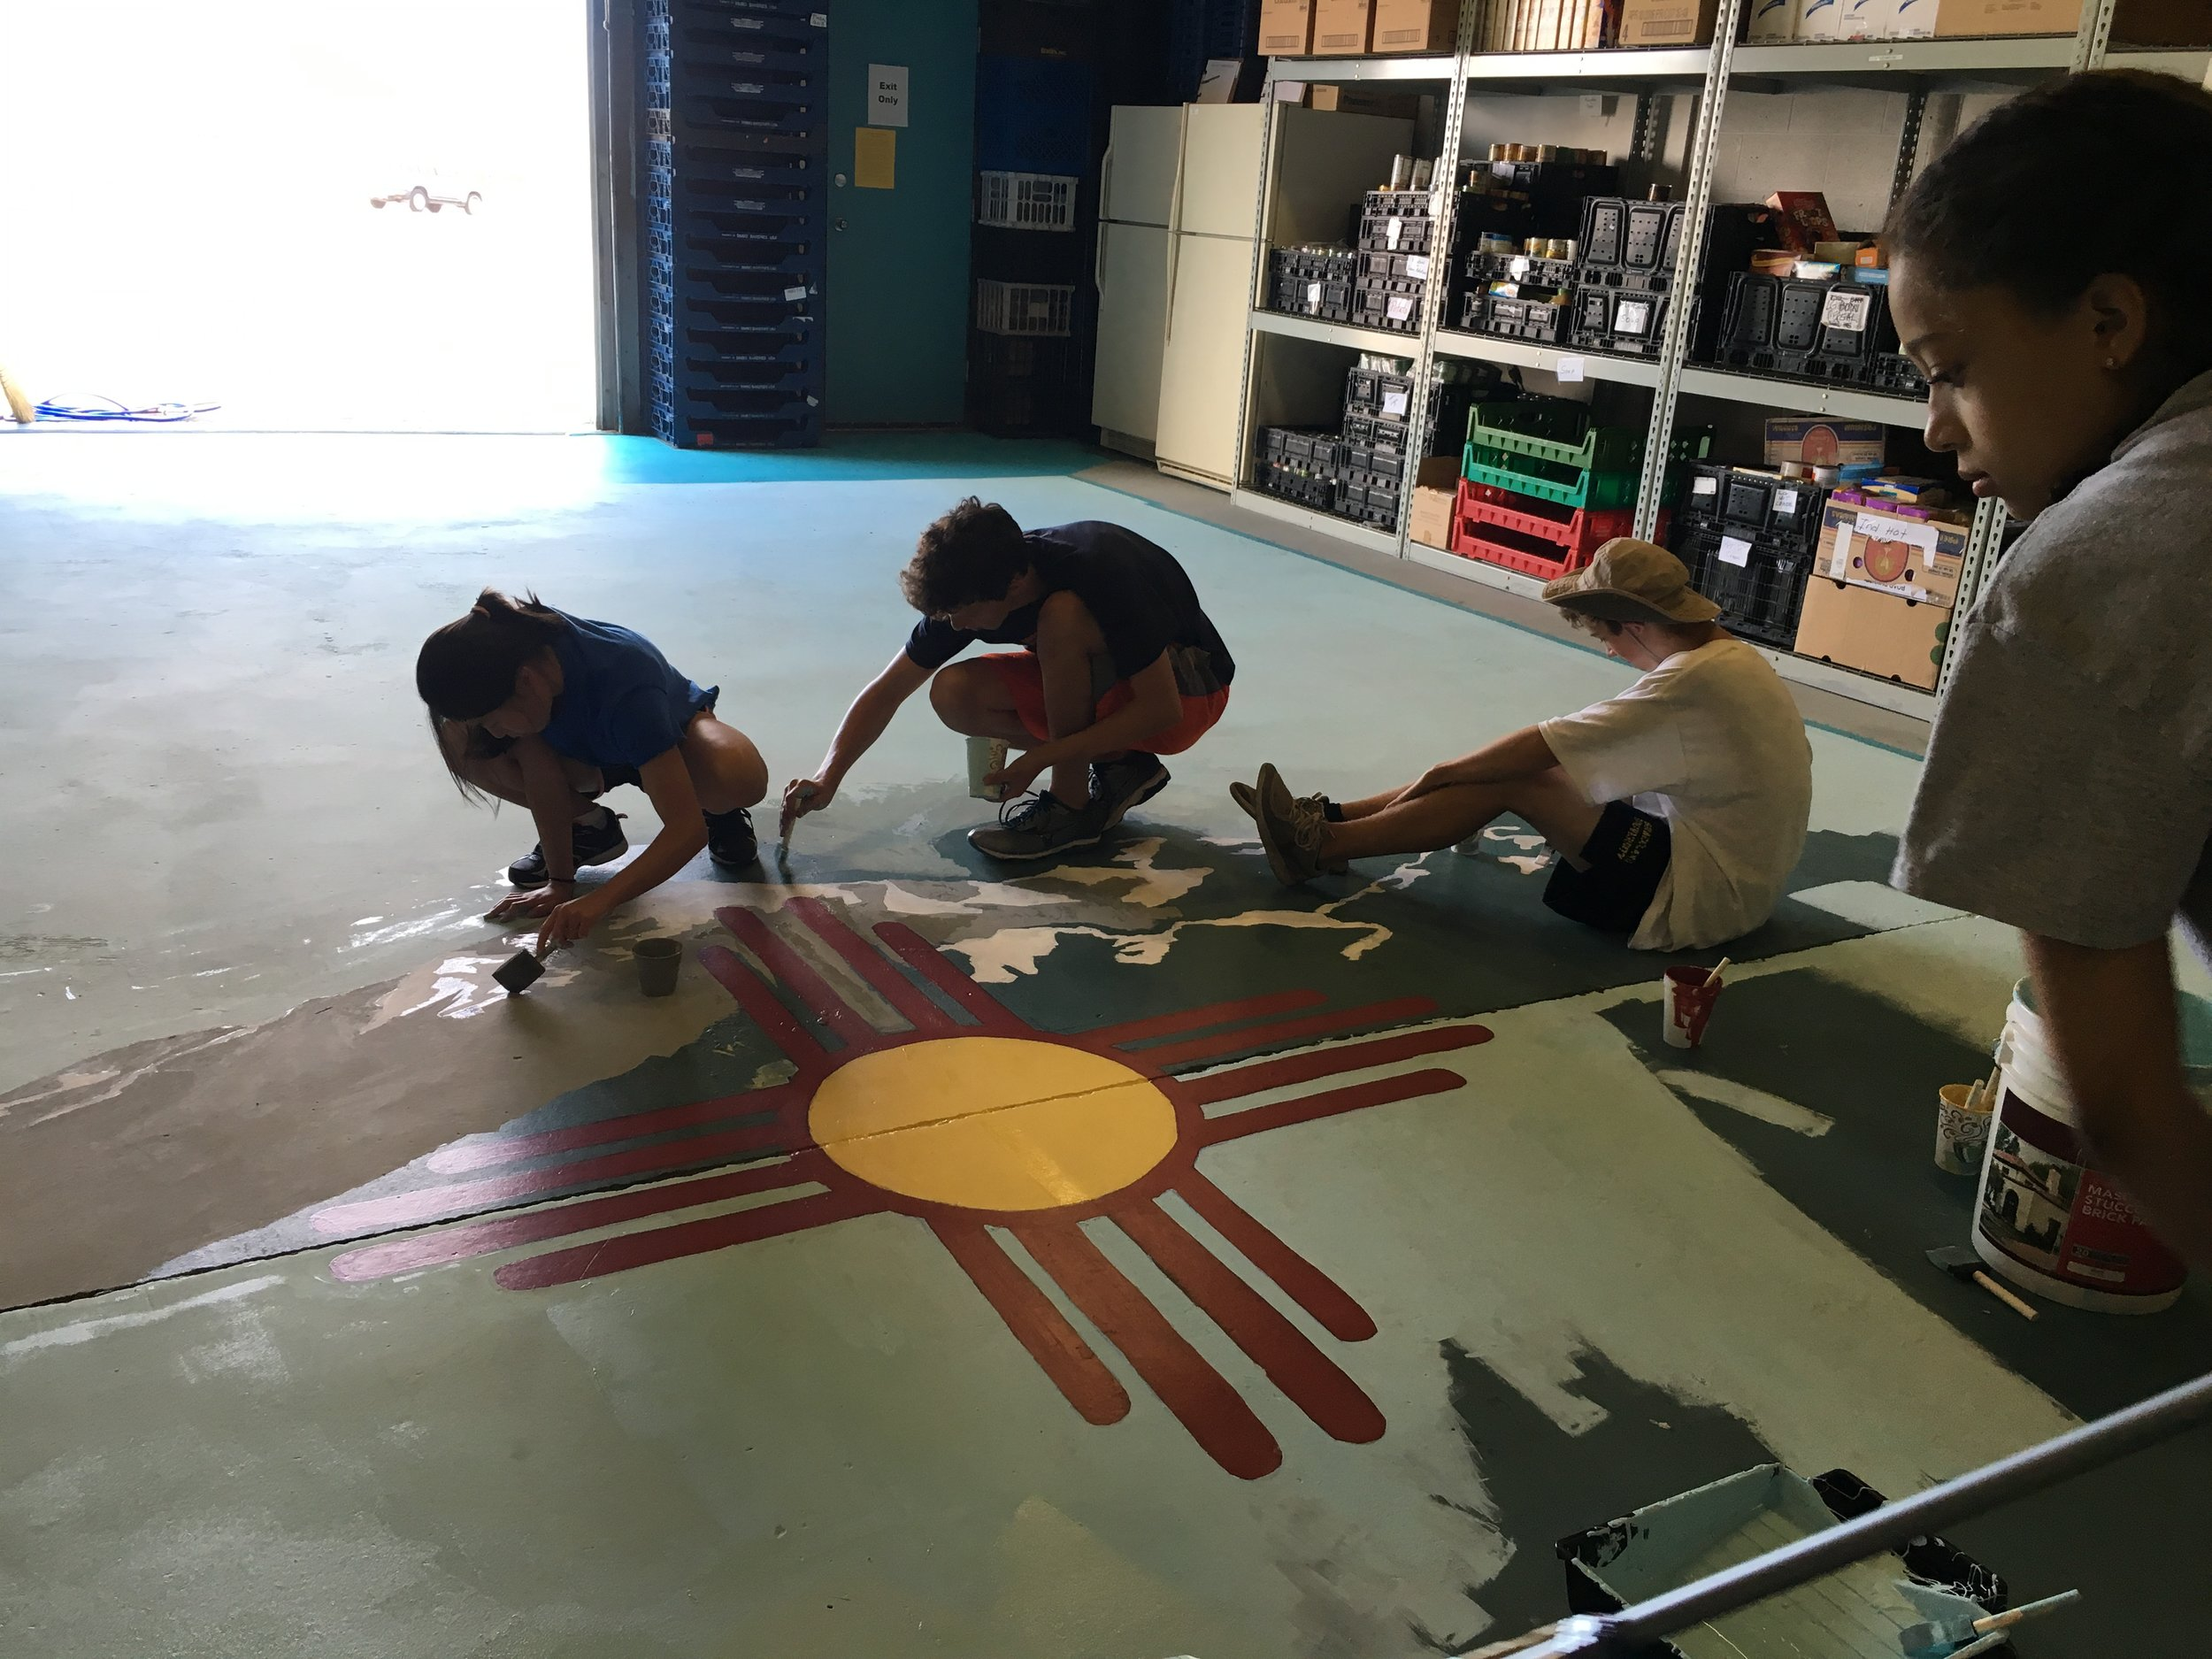 As part of Young Episcopalians in Service Colorado's service trip to Albuquerque, St Barnabas Youth painted the floor of Silver Horizons Senior Food Bank with the emblem of New Mexico and the Sandias Mountains.